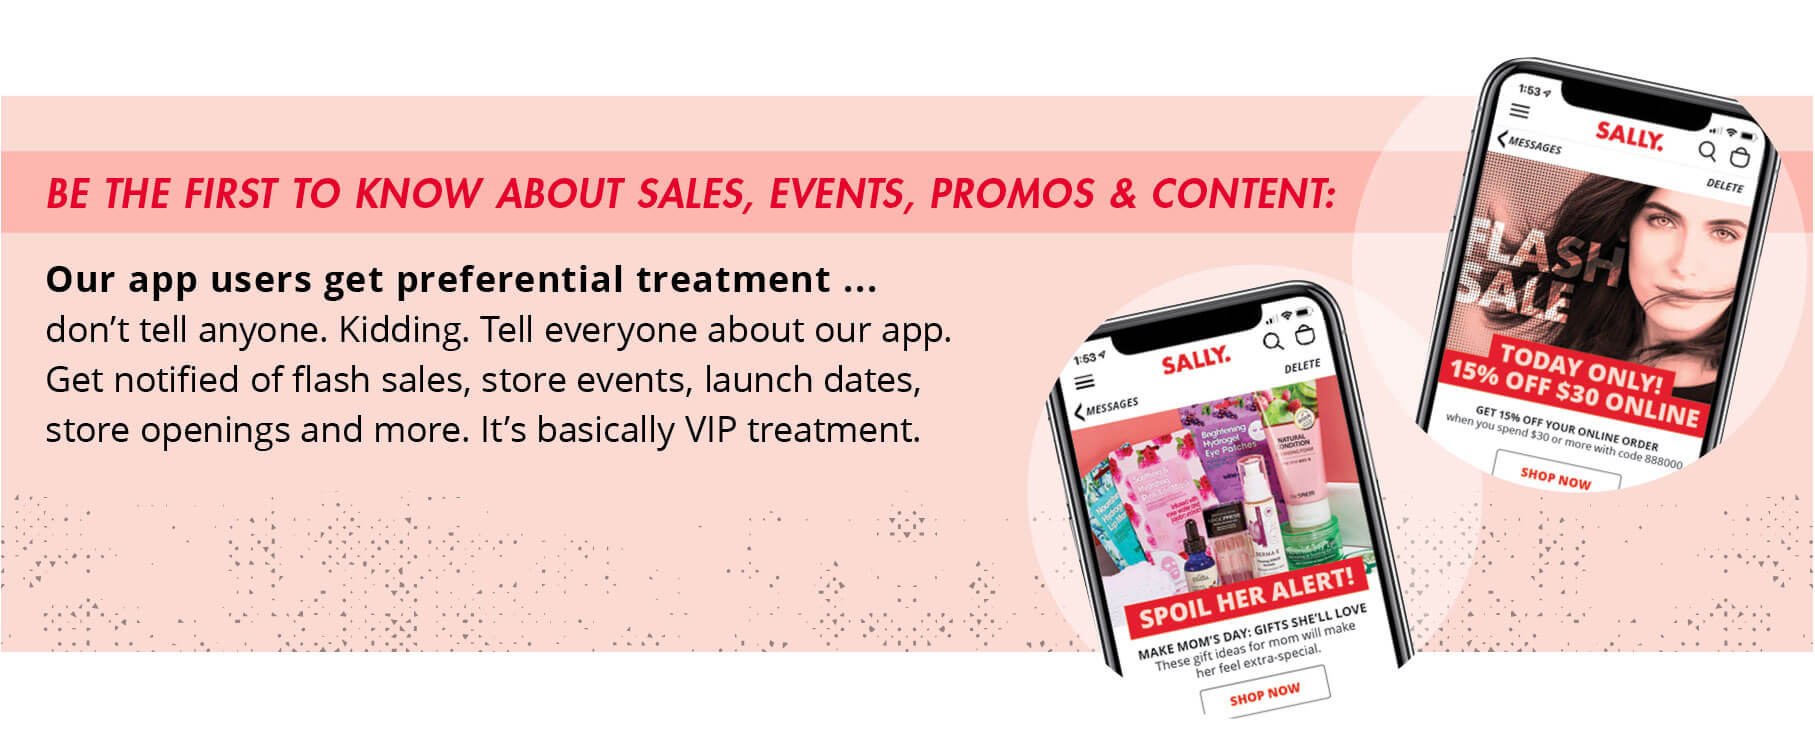 Be the first to know about sales, events, promos, and content: Our app users get preferential treatment...don't tell anyone. Kidding. Tell everyone about our app. Get notified of flash sales, store events, launch dates, store openings and more. It's basically VIP treatment.